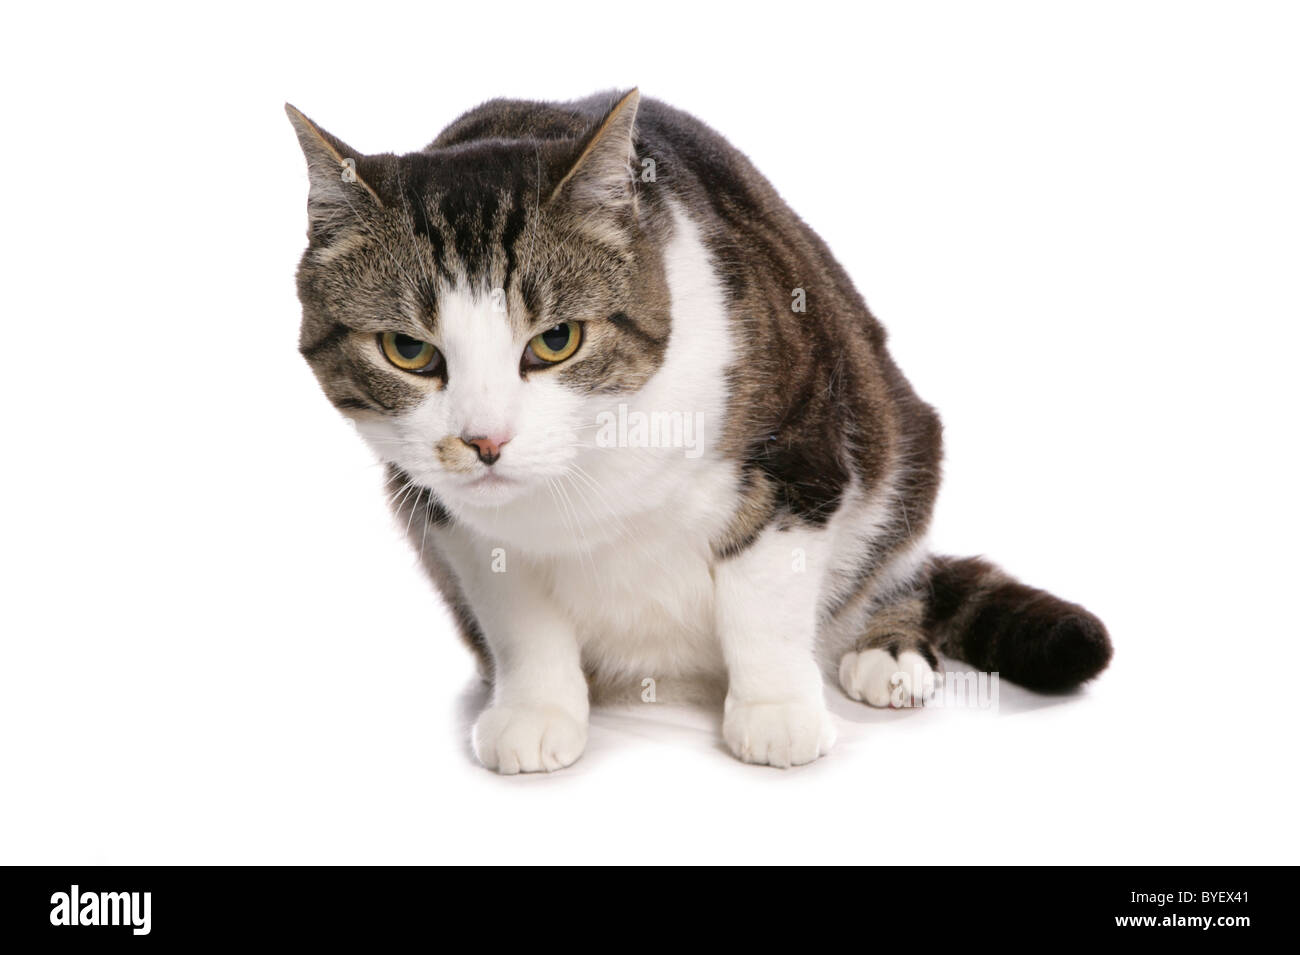 tabby and white cat hunched sitting studio - Stock Image